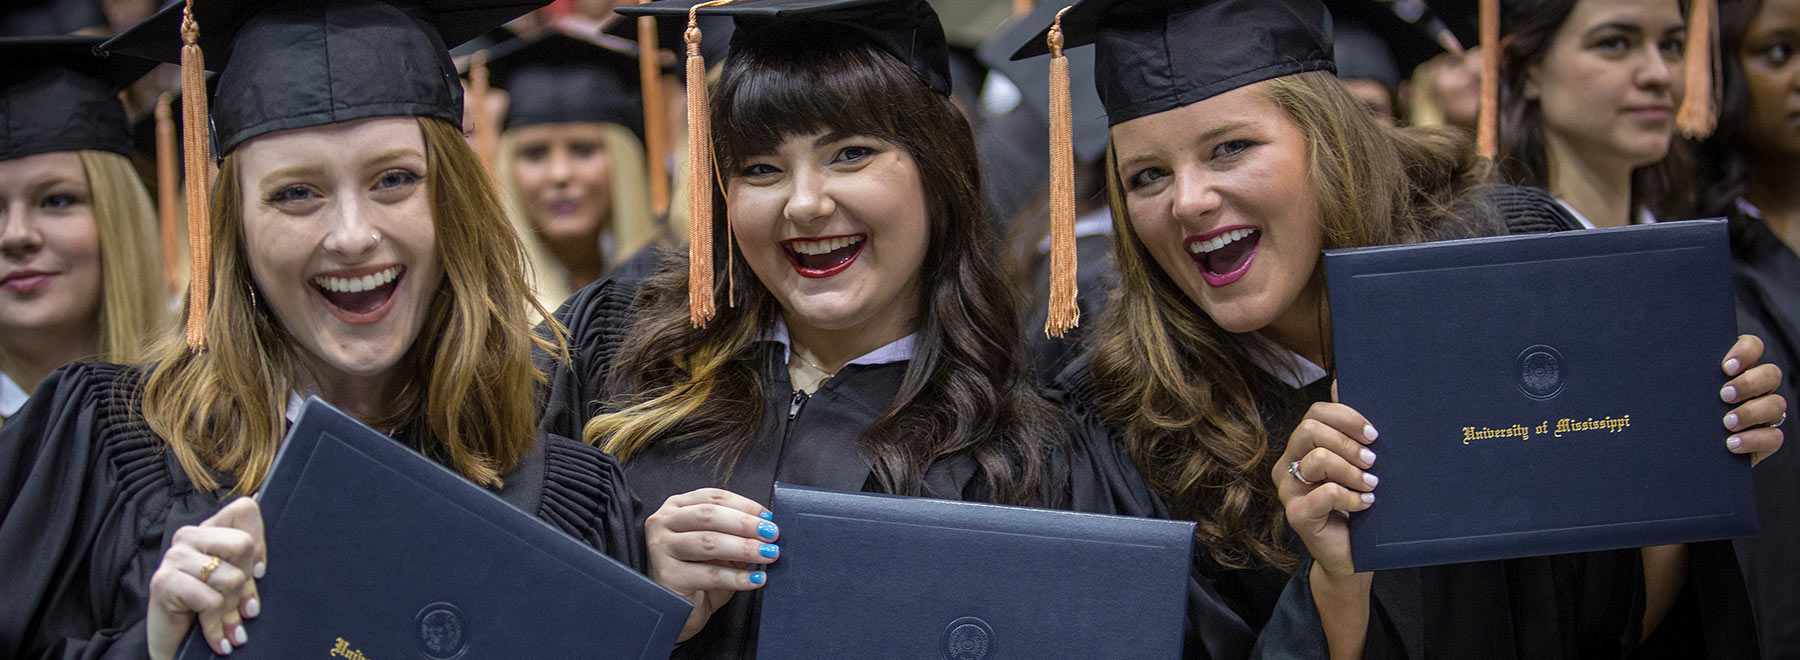 UMMC confers 930 degrees in health sciences professions